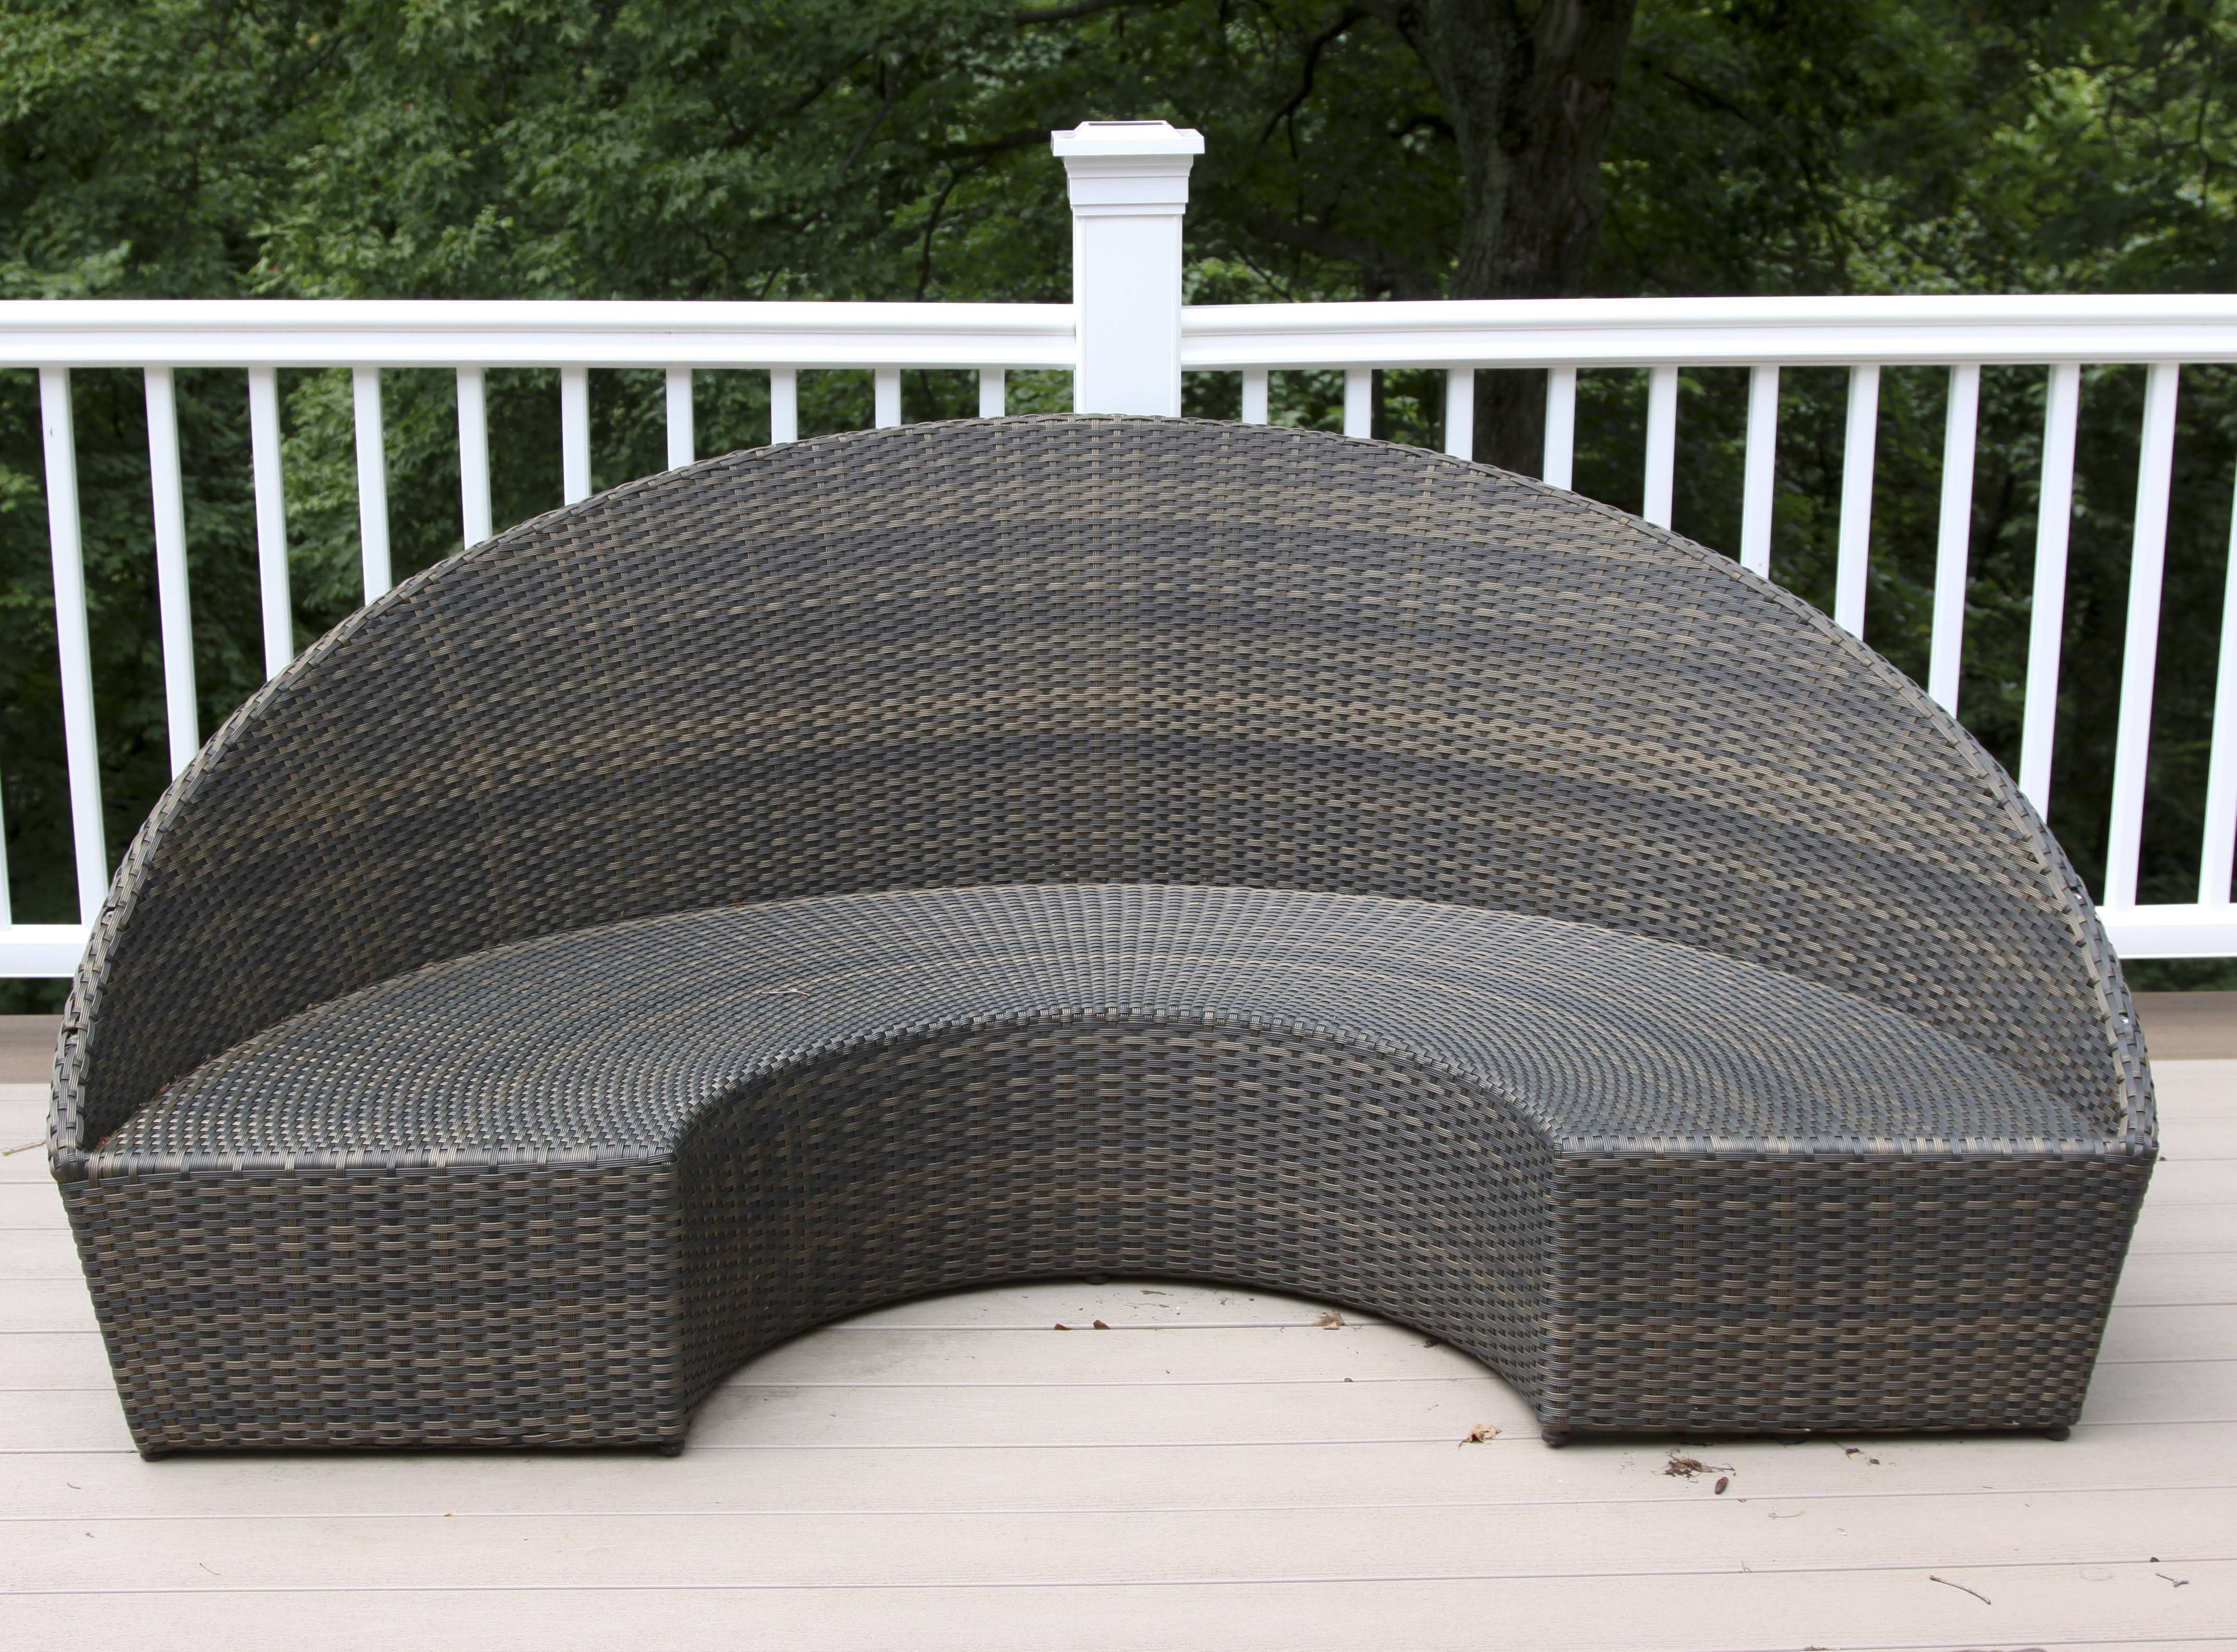 Frontgate Half Circle Woven Patio Bench